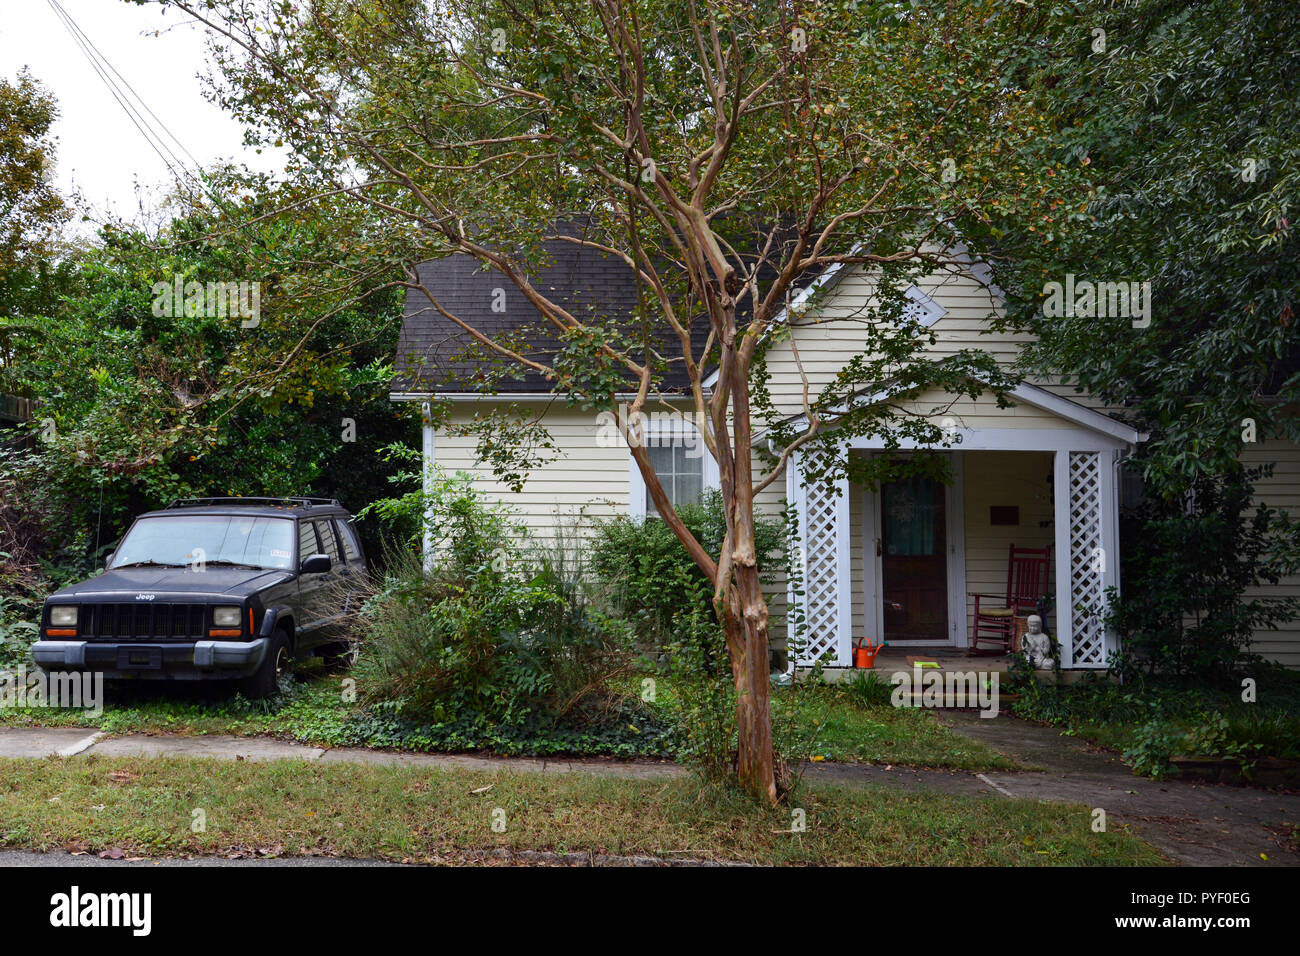 A rundown home with old truck out front in Raleigh North Carolina's historic Oakwood neighborhood. Stock Photo